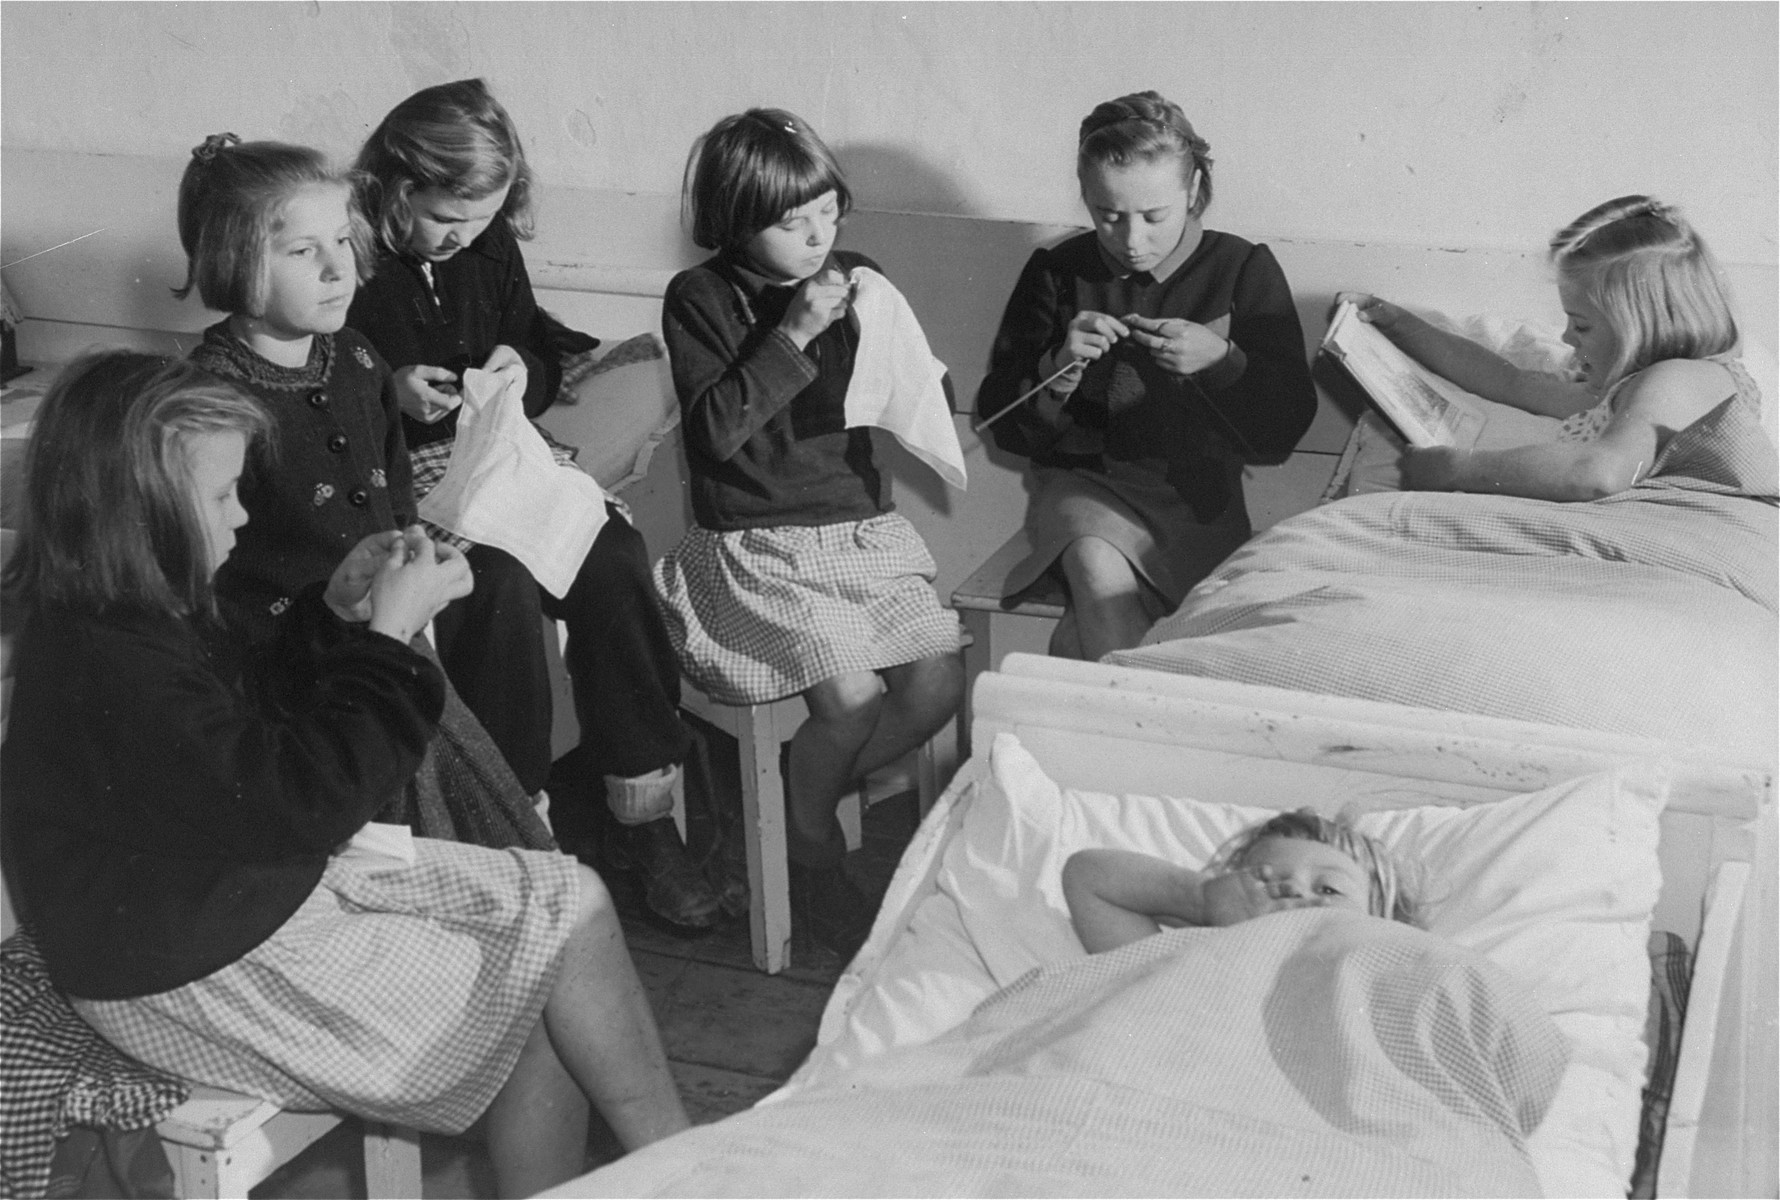 DP girls sew and knit in their living quarters at the Kloster Indersdorf DP children's center.  Pictured in the center is Sofia Karpuk..  Sofia was the daughter of a former forced laborer.  Most of the other girls came from Upper Silesia.  Their German teacher brought her class to Bavaria to escape Soviet troops.